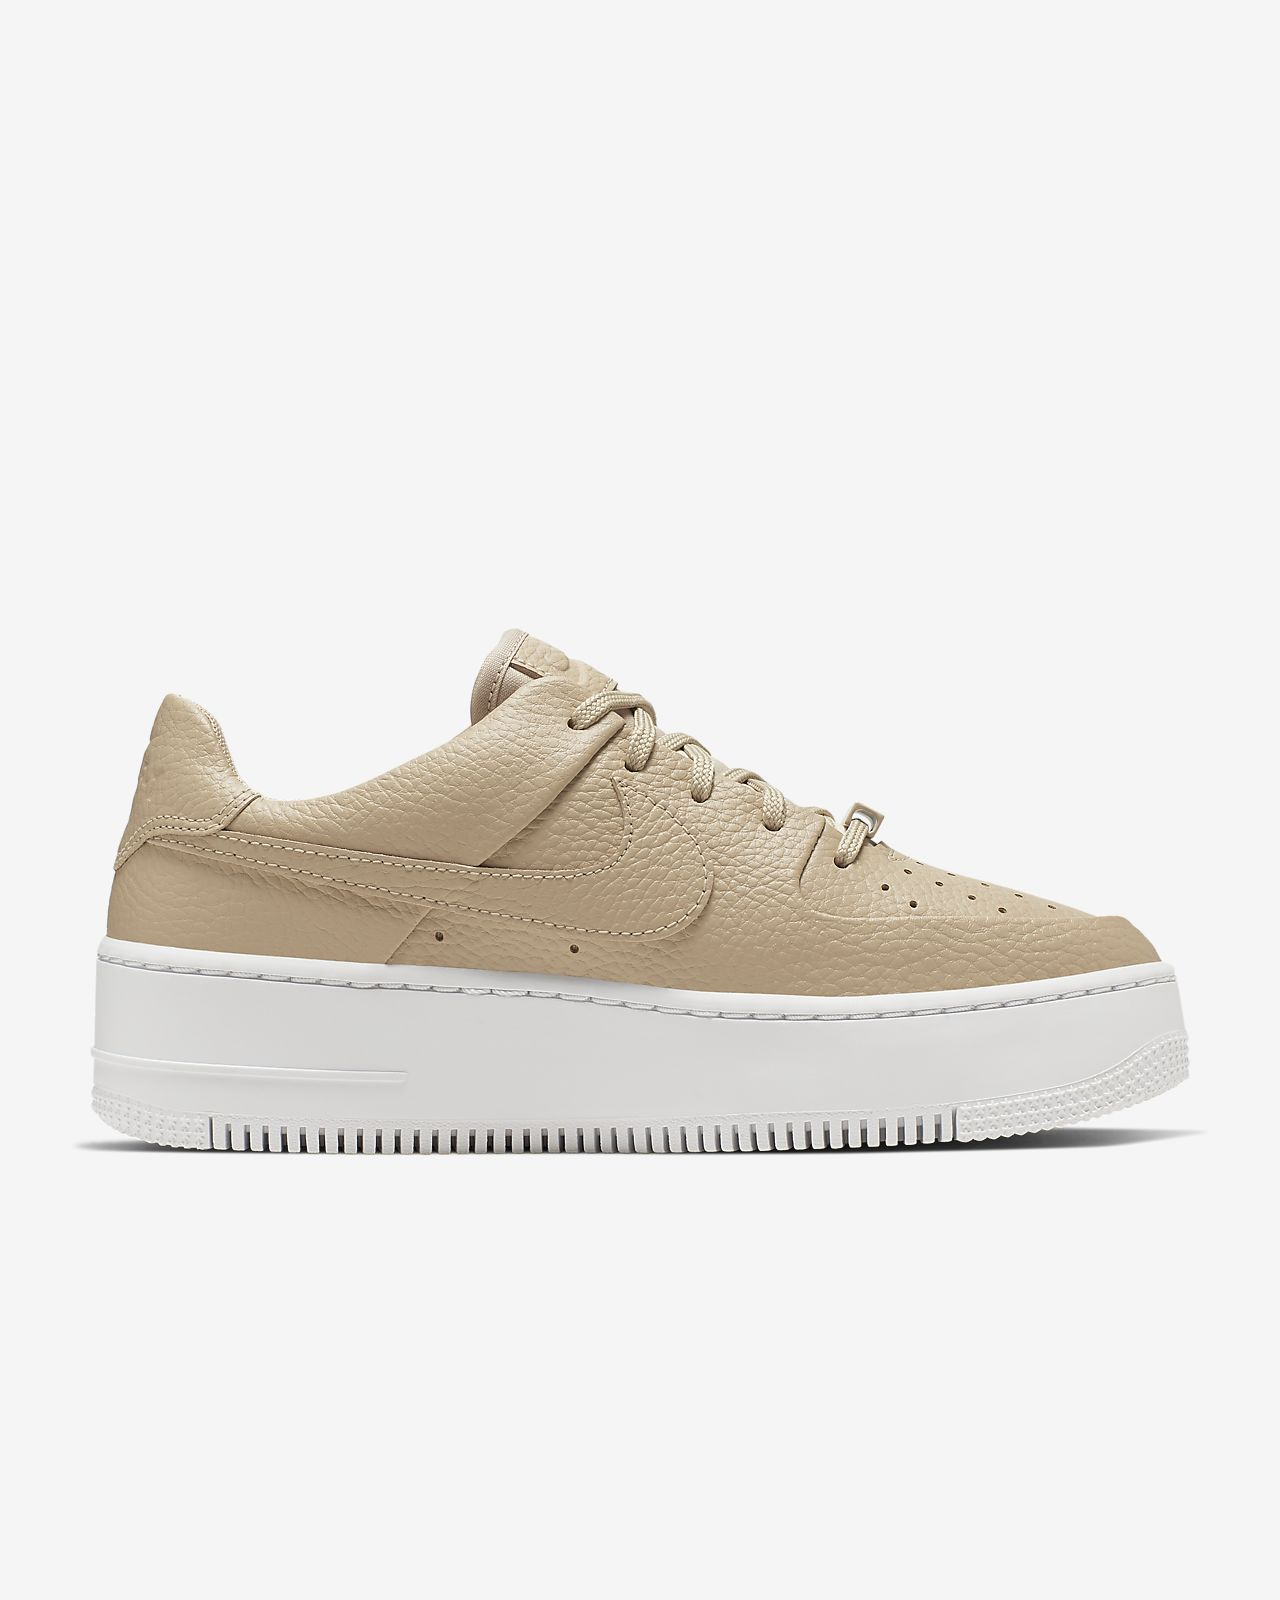 Femme Nike Pour Air Force Sage 2 1 Low Chaussure MGzpqUSV